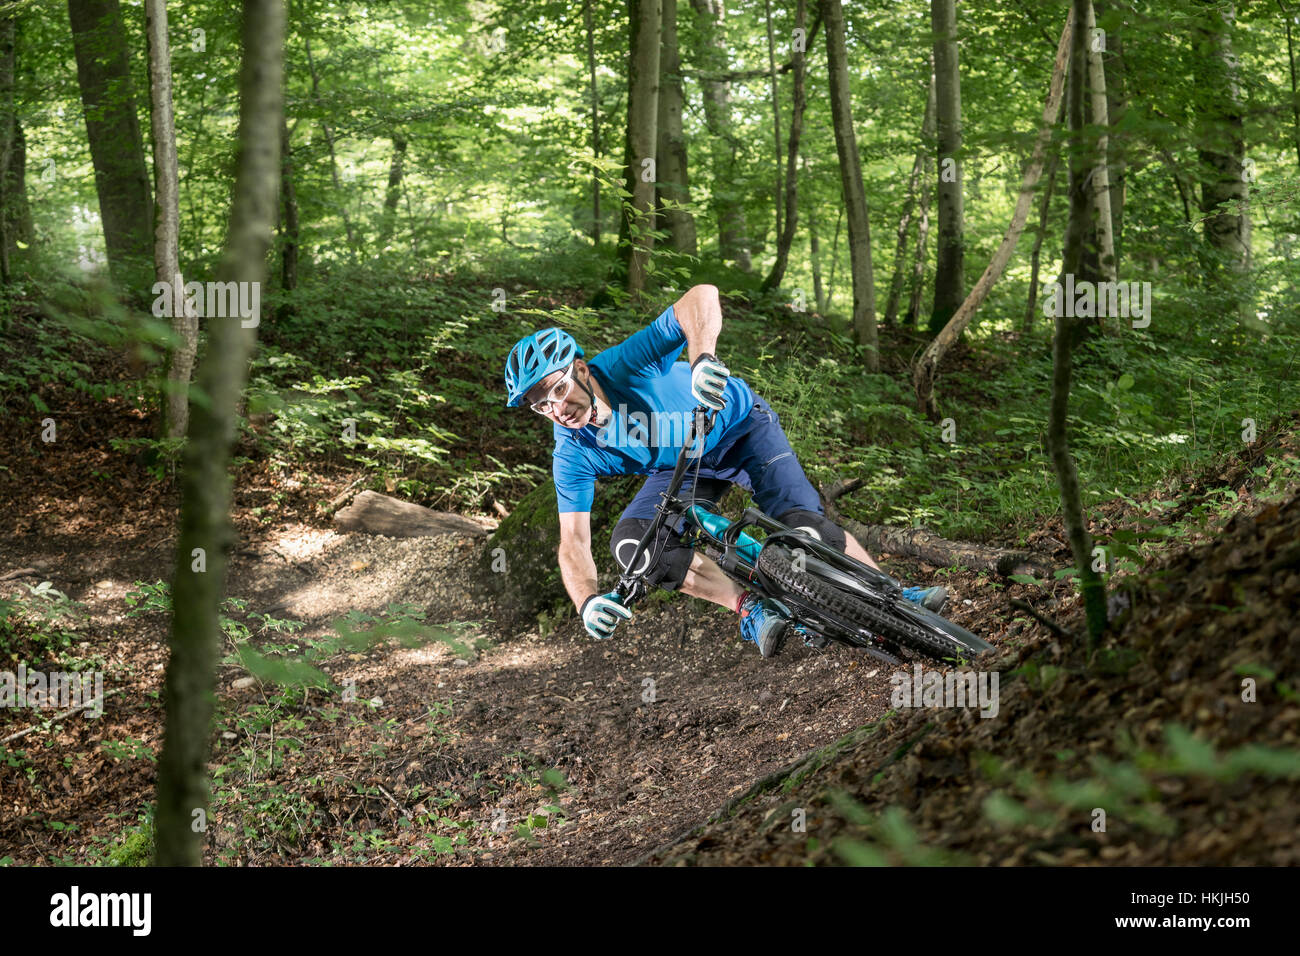 Mountain biker riding downhill in forest, Bavaria, Germany - Stock Image